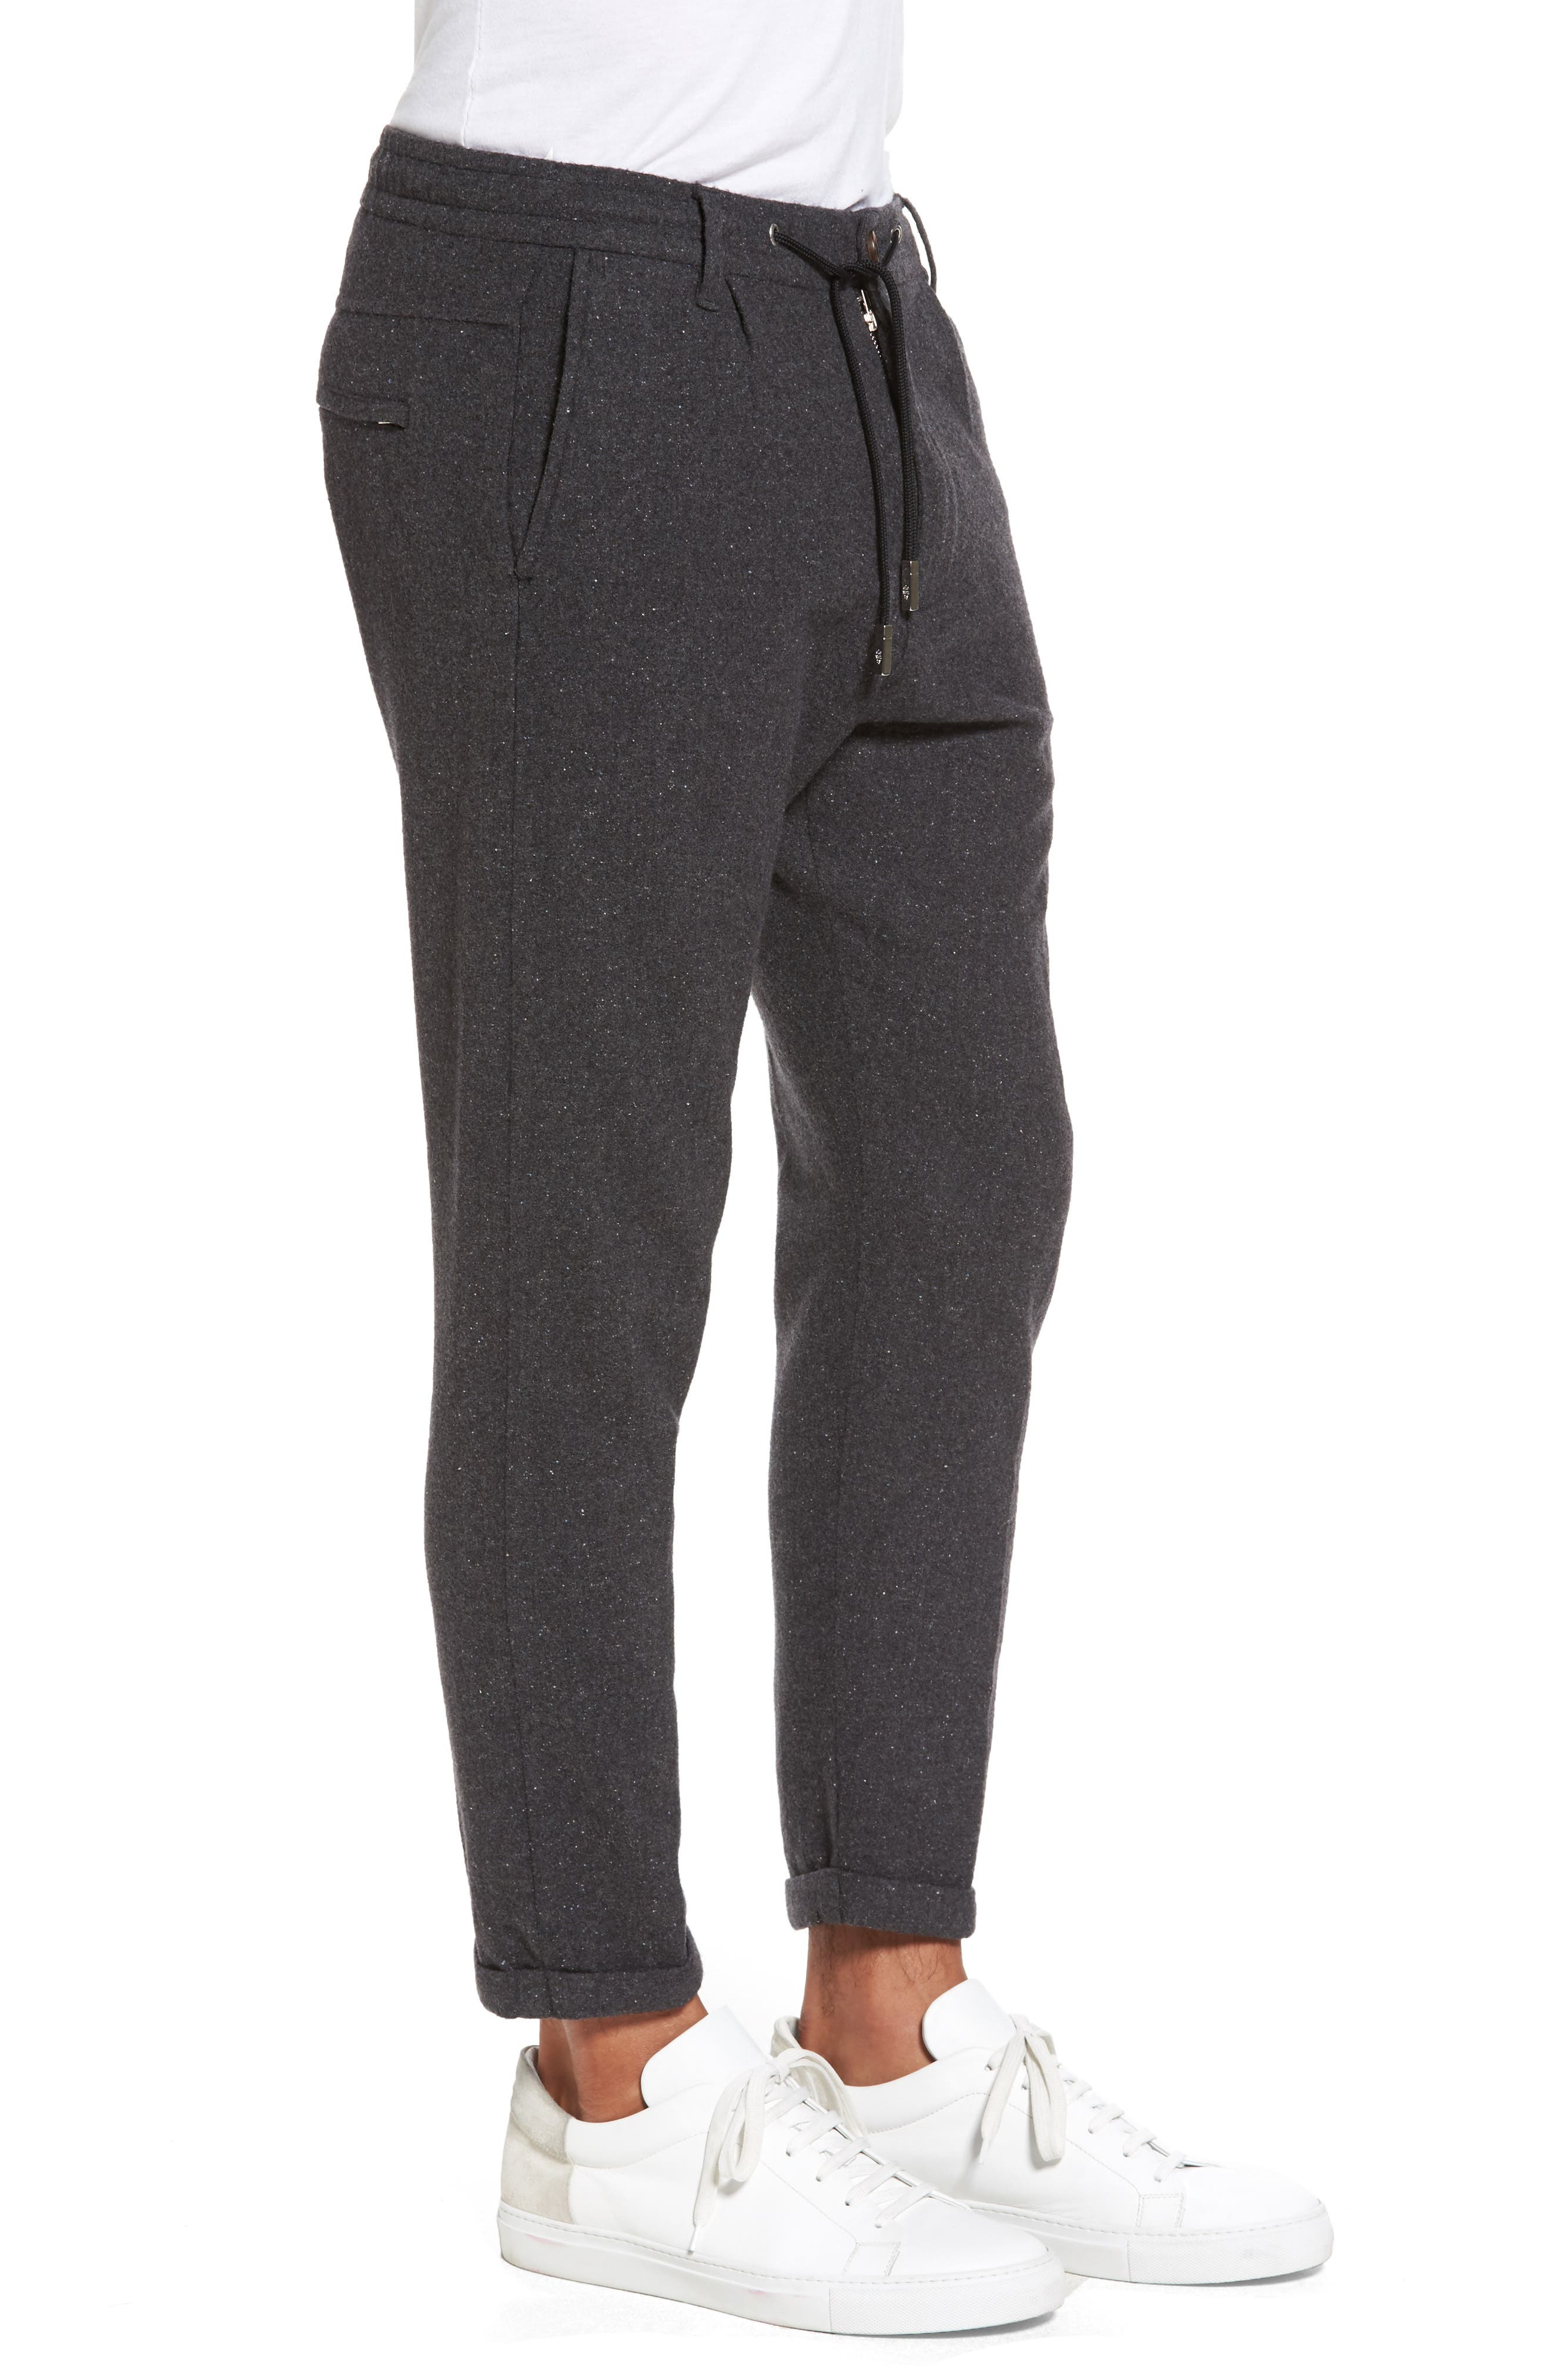 Donegal Stretch Wool Jogger Pants,                             Alternate thumbnail 3, color,                             020